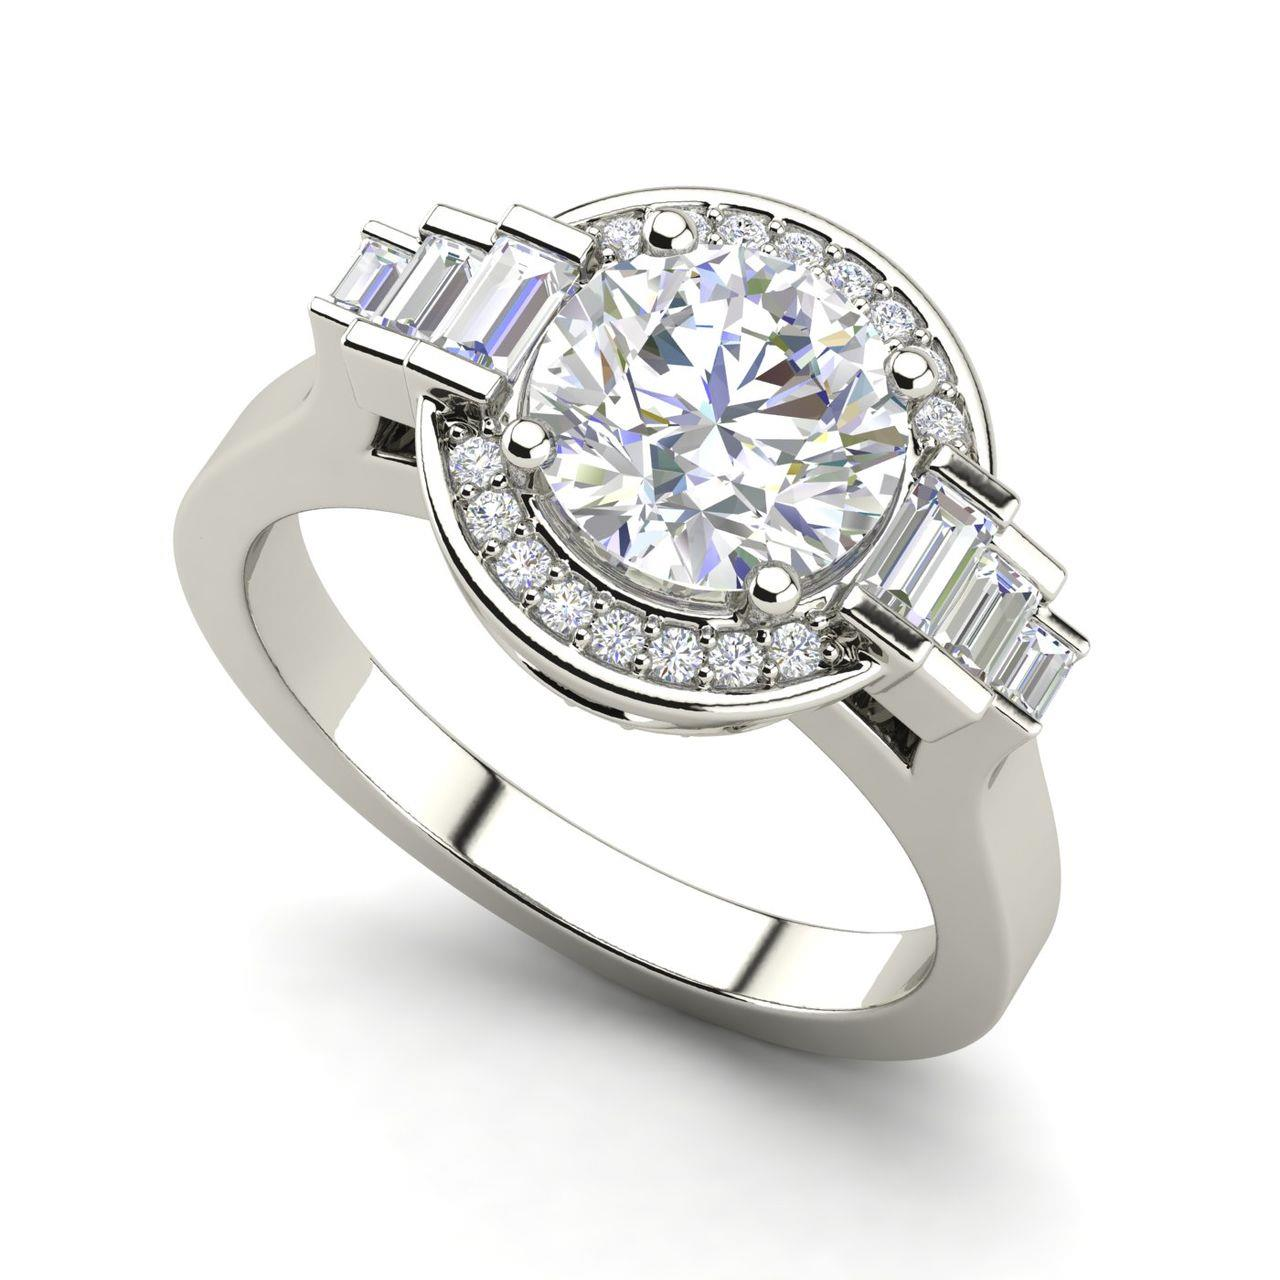 Halo Solitaire 0.8 Carat Round Cut Diamond Engagement Ring